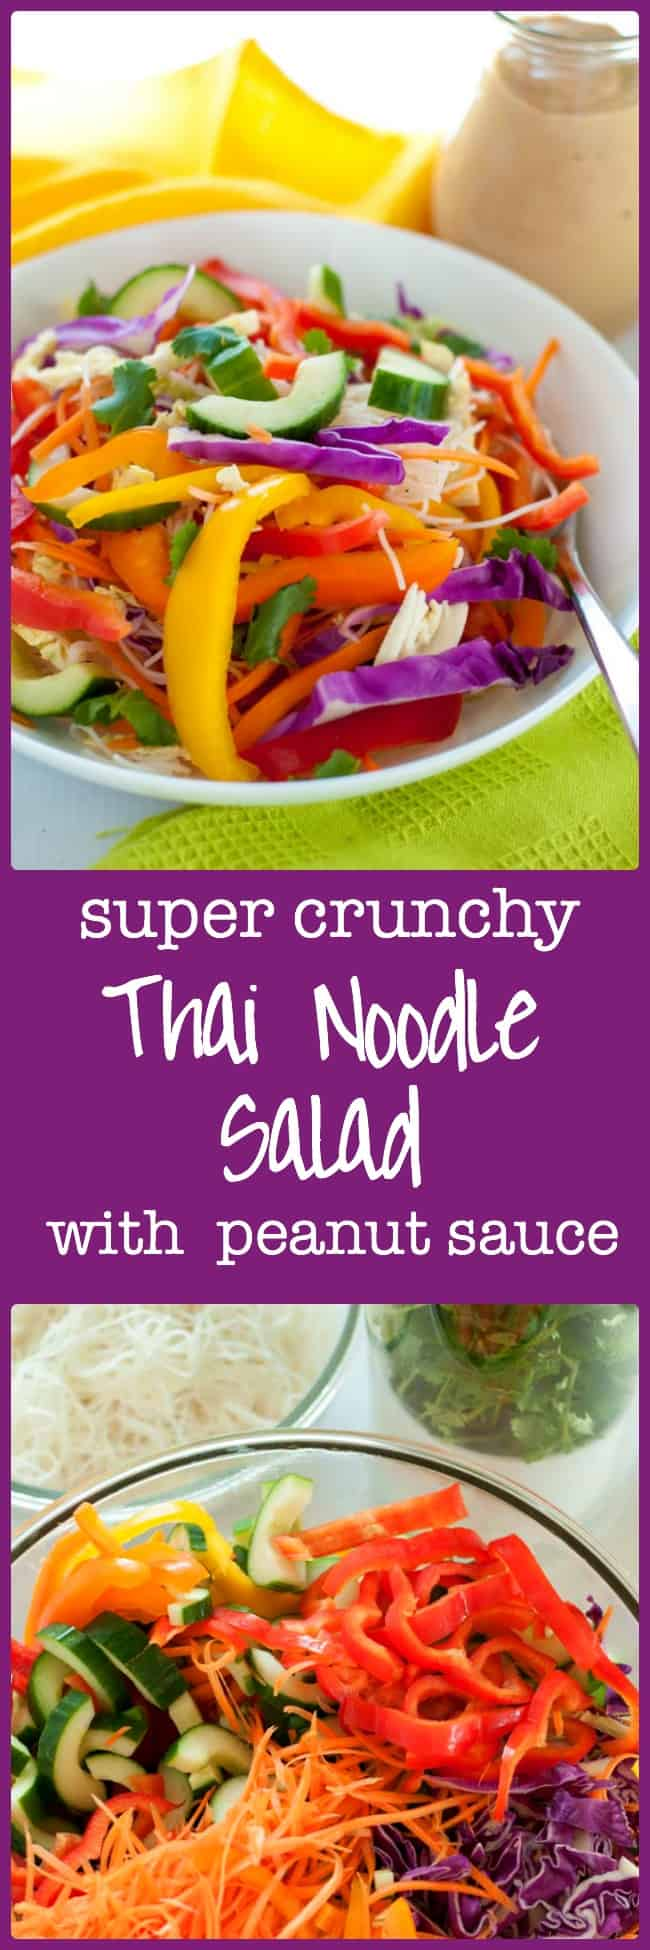 Super Crunchy Thai Noodle Salad with Spicy Peanut Sauce. Healthy enough for a weeknight meal, elegant and interesting enough for a dinner party. Perfect for potlucks! Serve it with chicken skewers or shrimp and make it a complete meal.